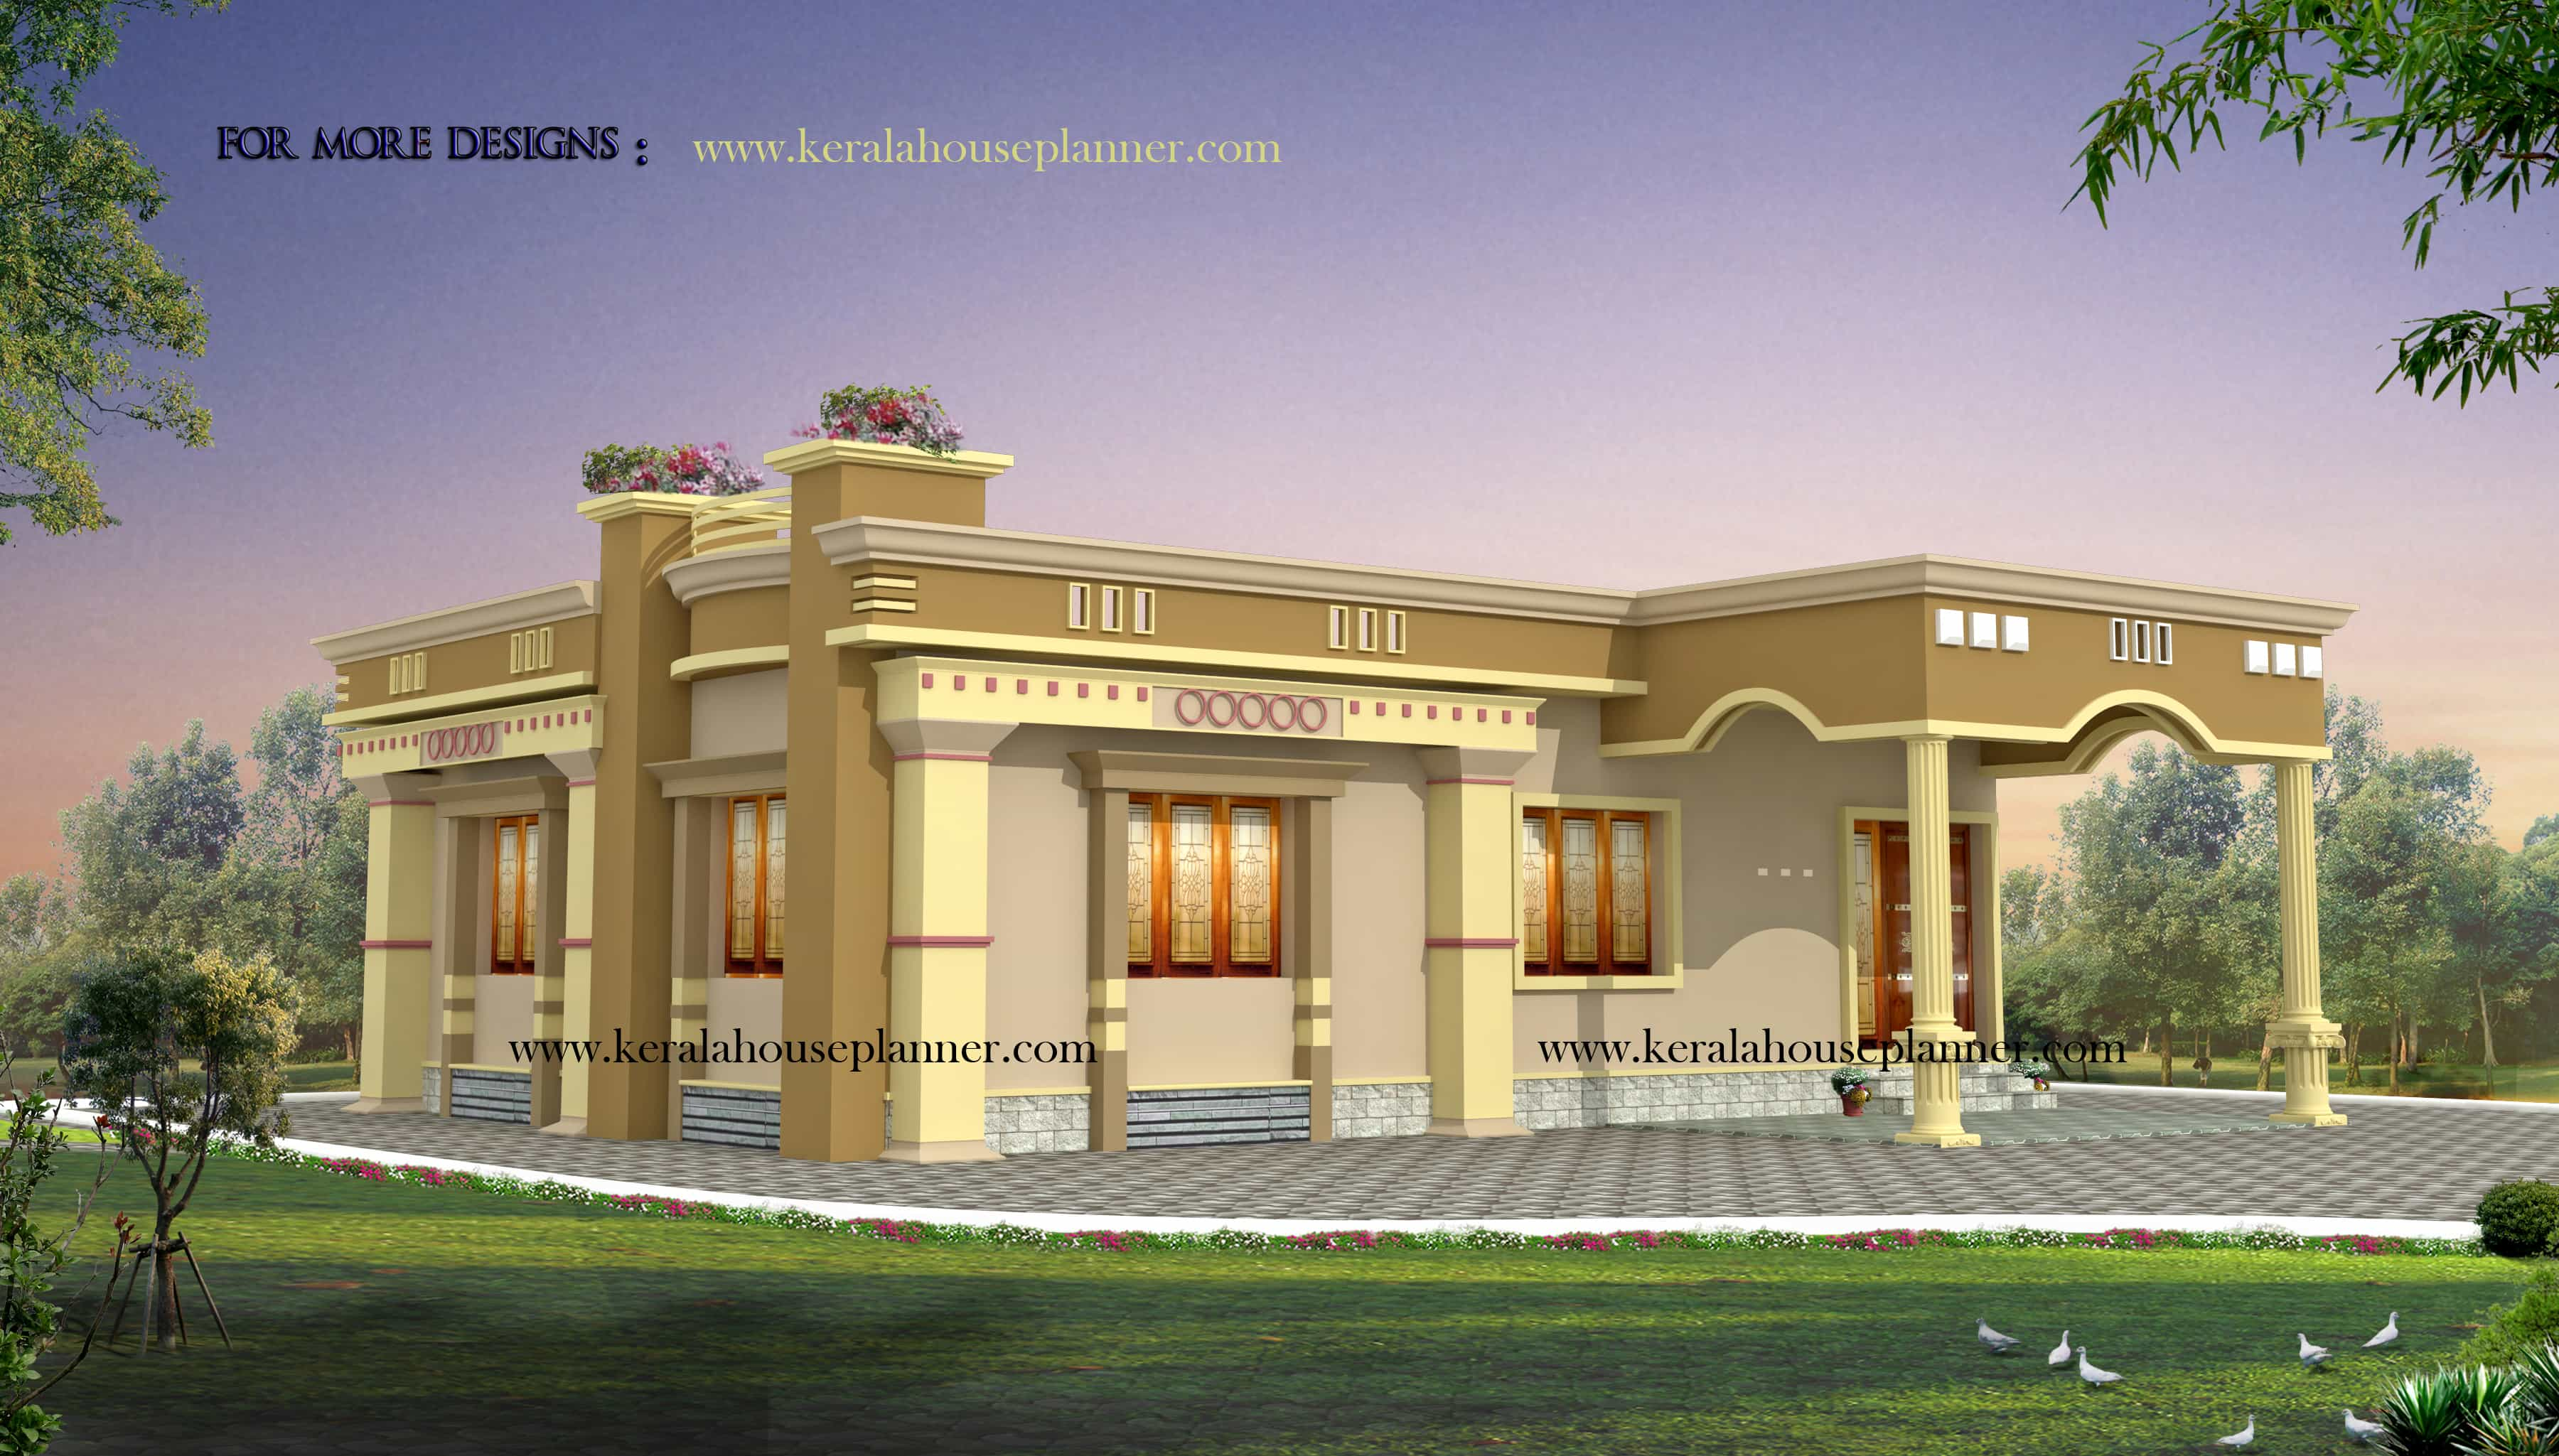 Kerala house plans 1200 sq ft with photos khp for Home architecture design kerala